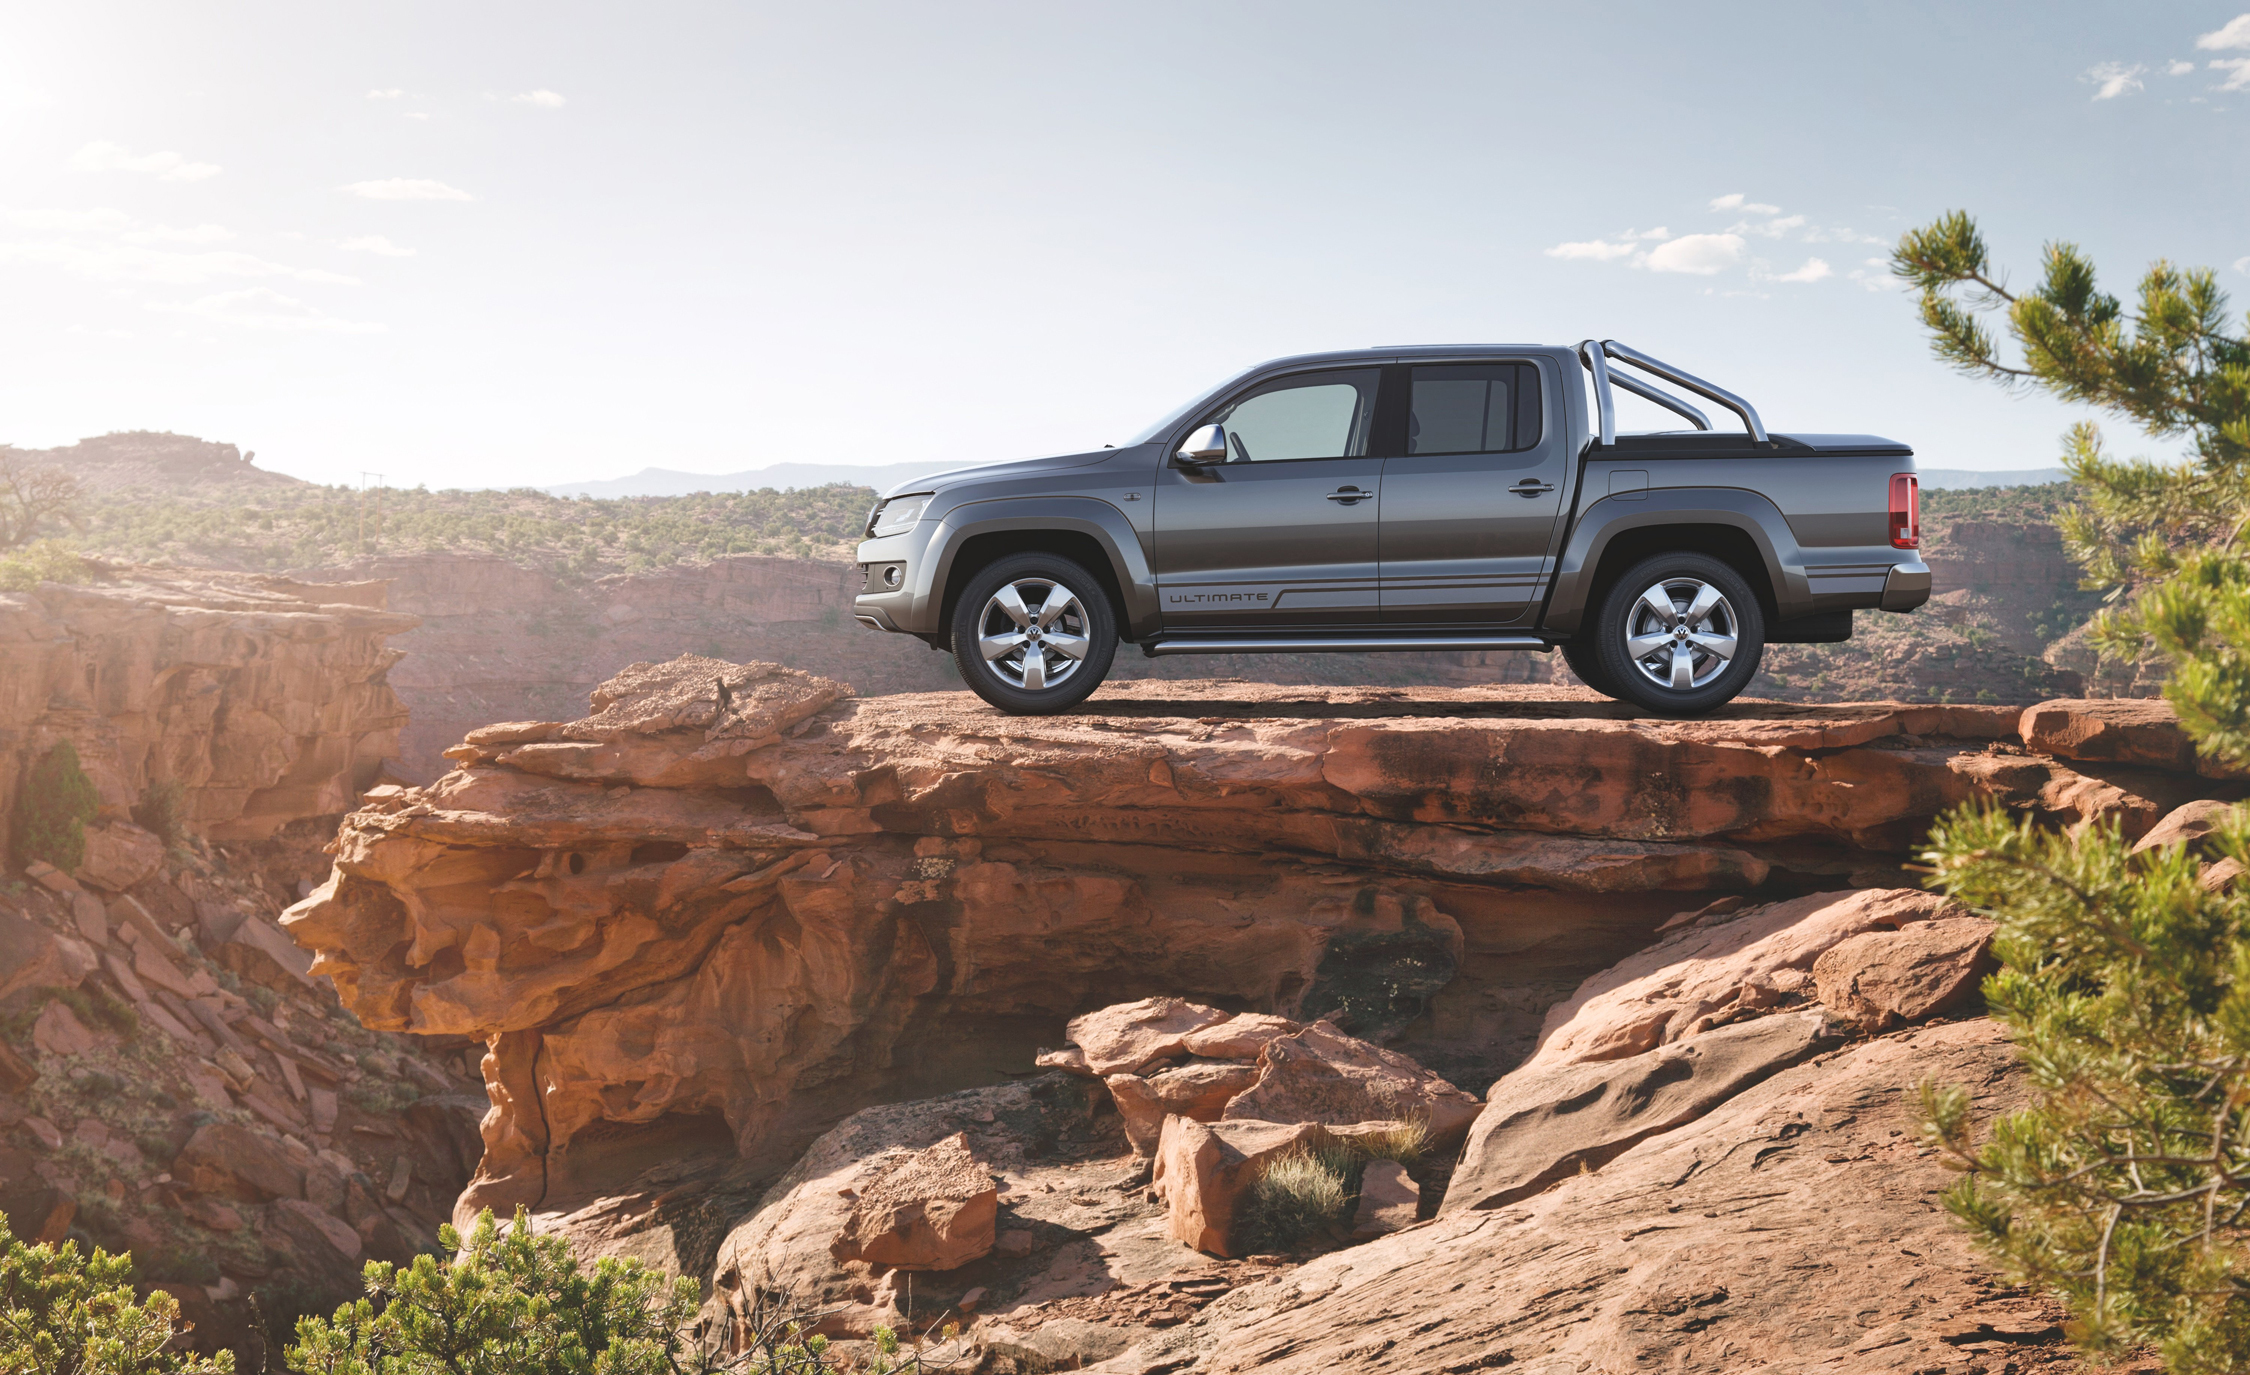 Volkswagen Amarok Wallpapers Images Photos Pictures Backgrounds